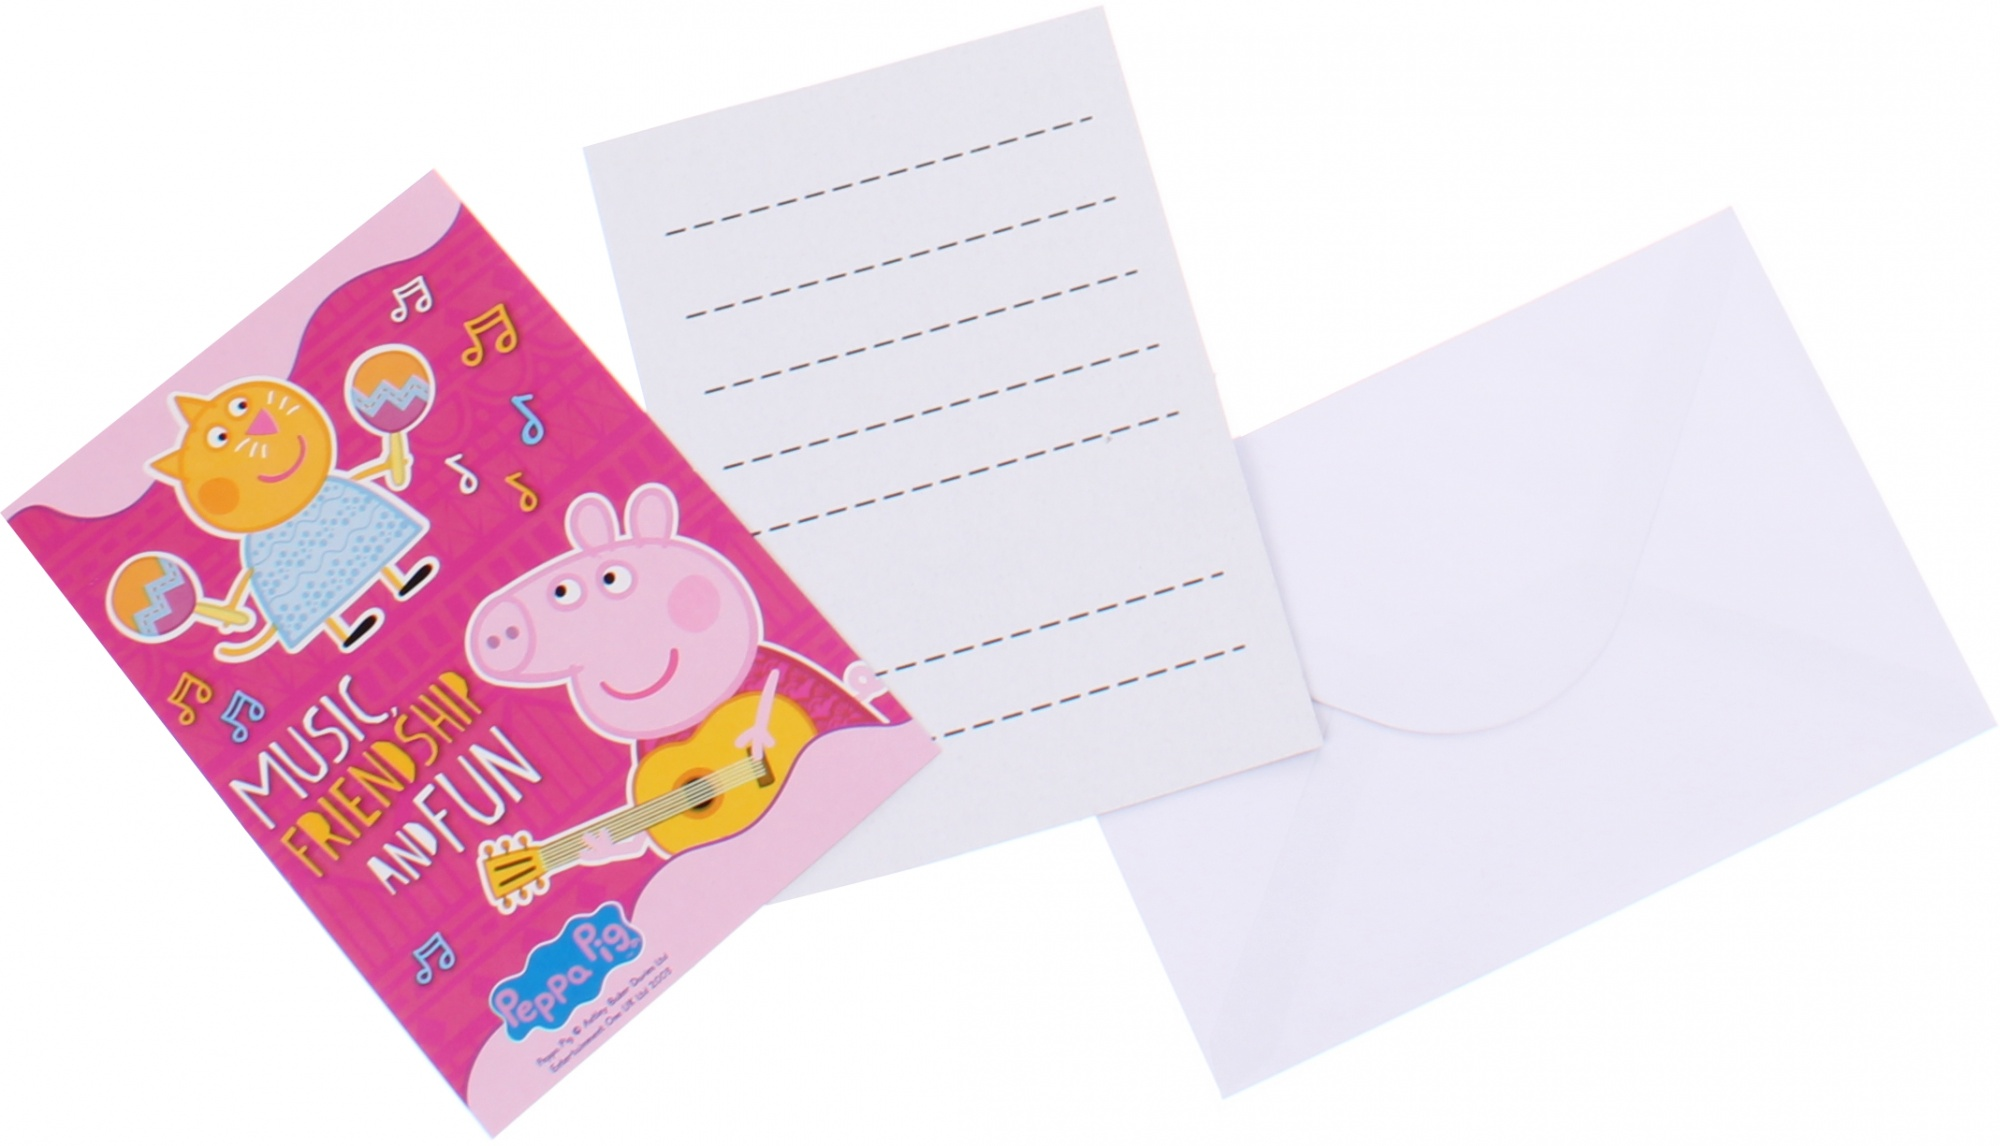 Peppa Pig Invitations With Envelope Pink 6 Pieces Internet Toys